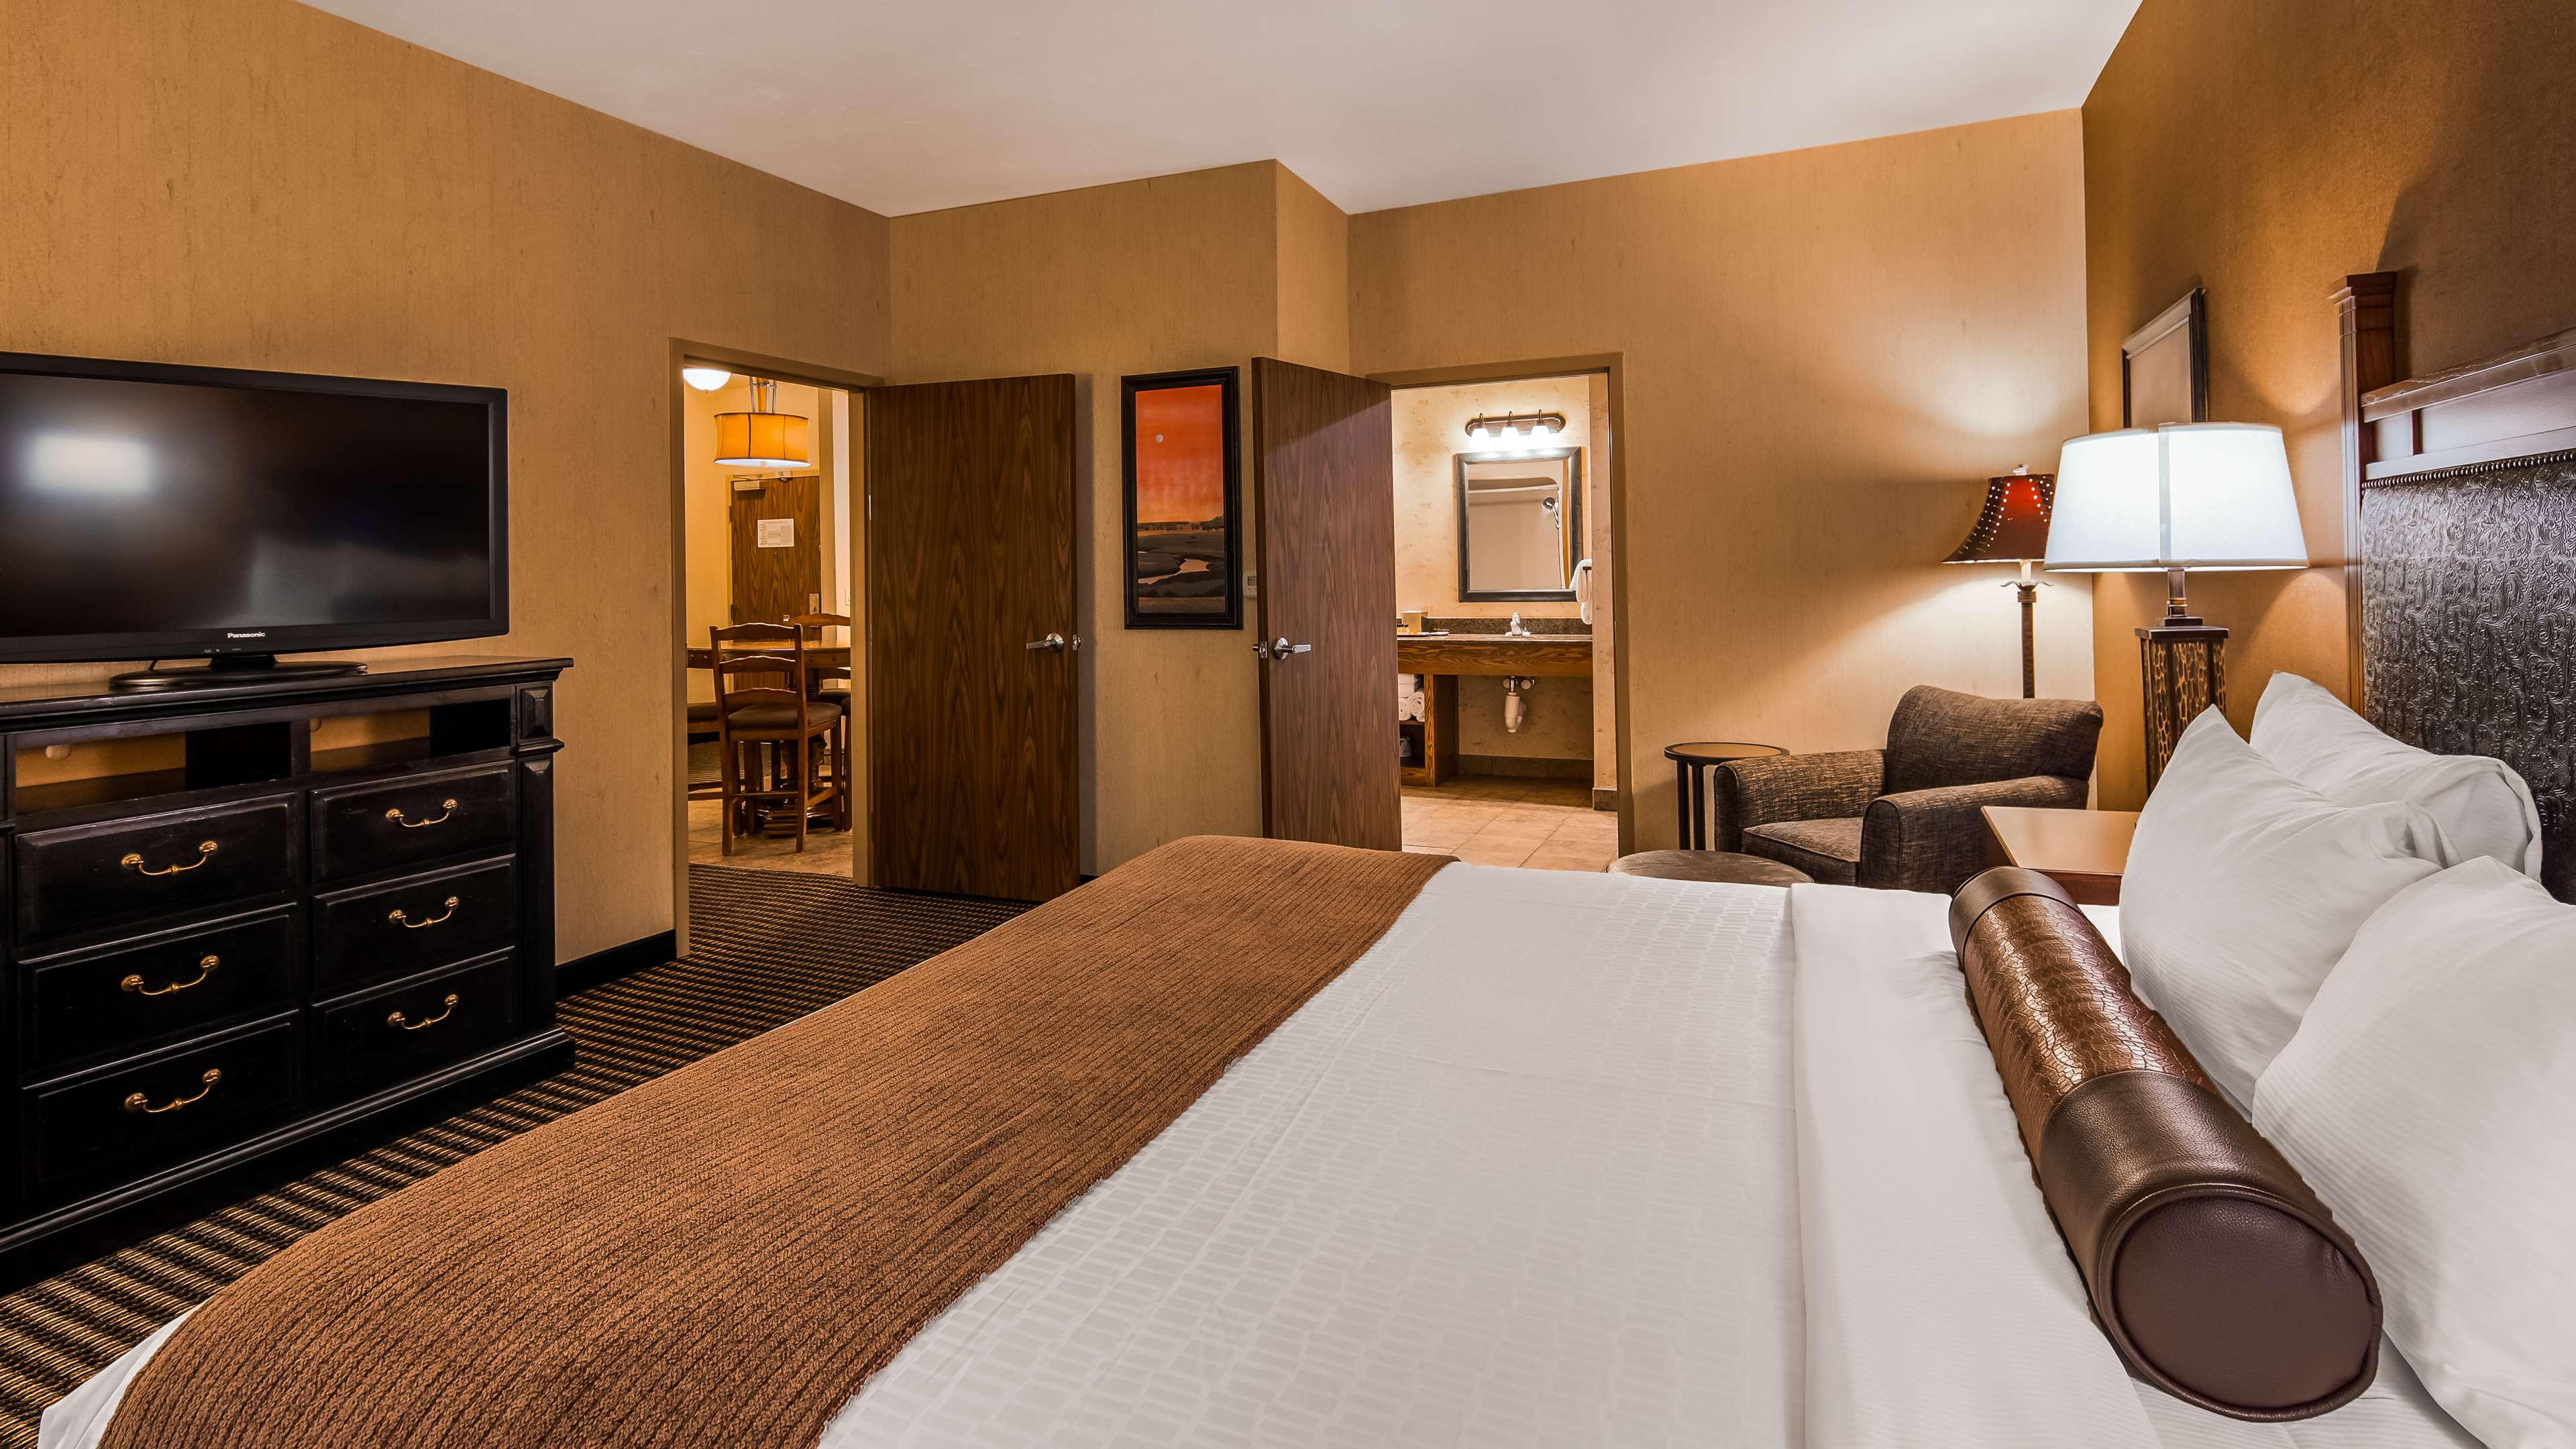 Best Western Plus Bryce Canyon Grand Hotel image 11